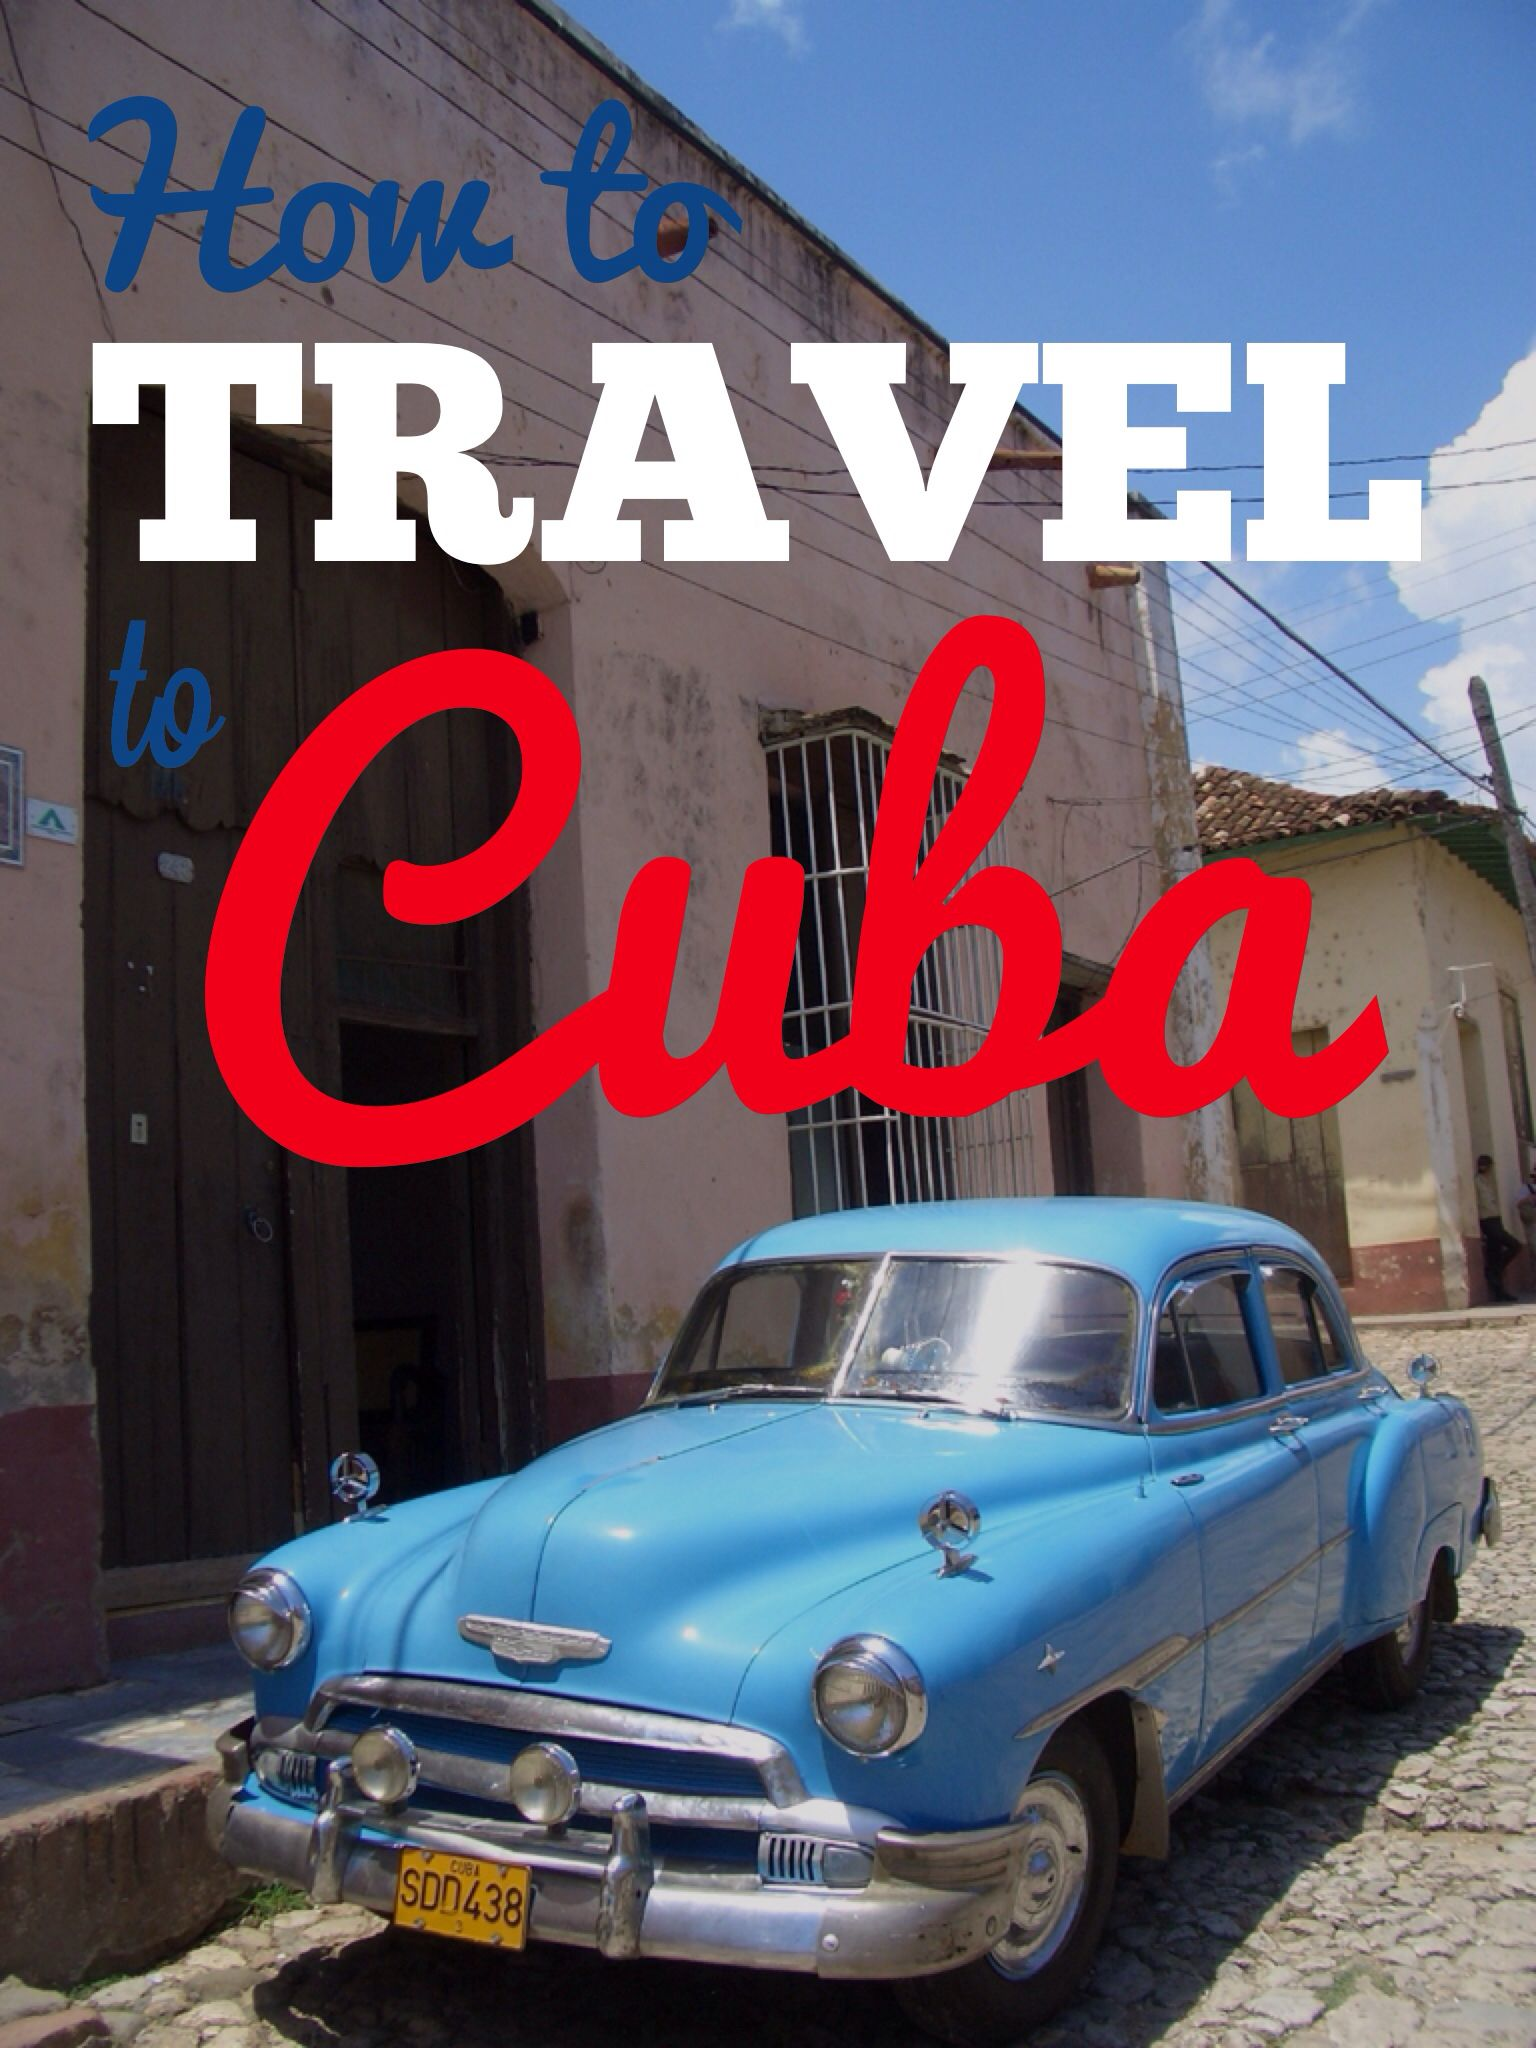 Flights, visas and all the reasons why you shouldn't miss this #Caribbean island - from #salsa in Havana to cocktails on the beaches - here's how to travel to #Cuba.